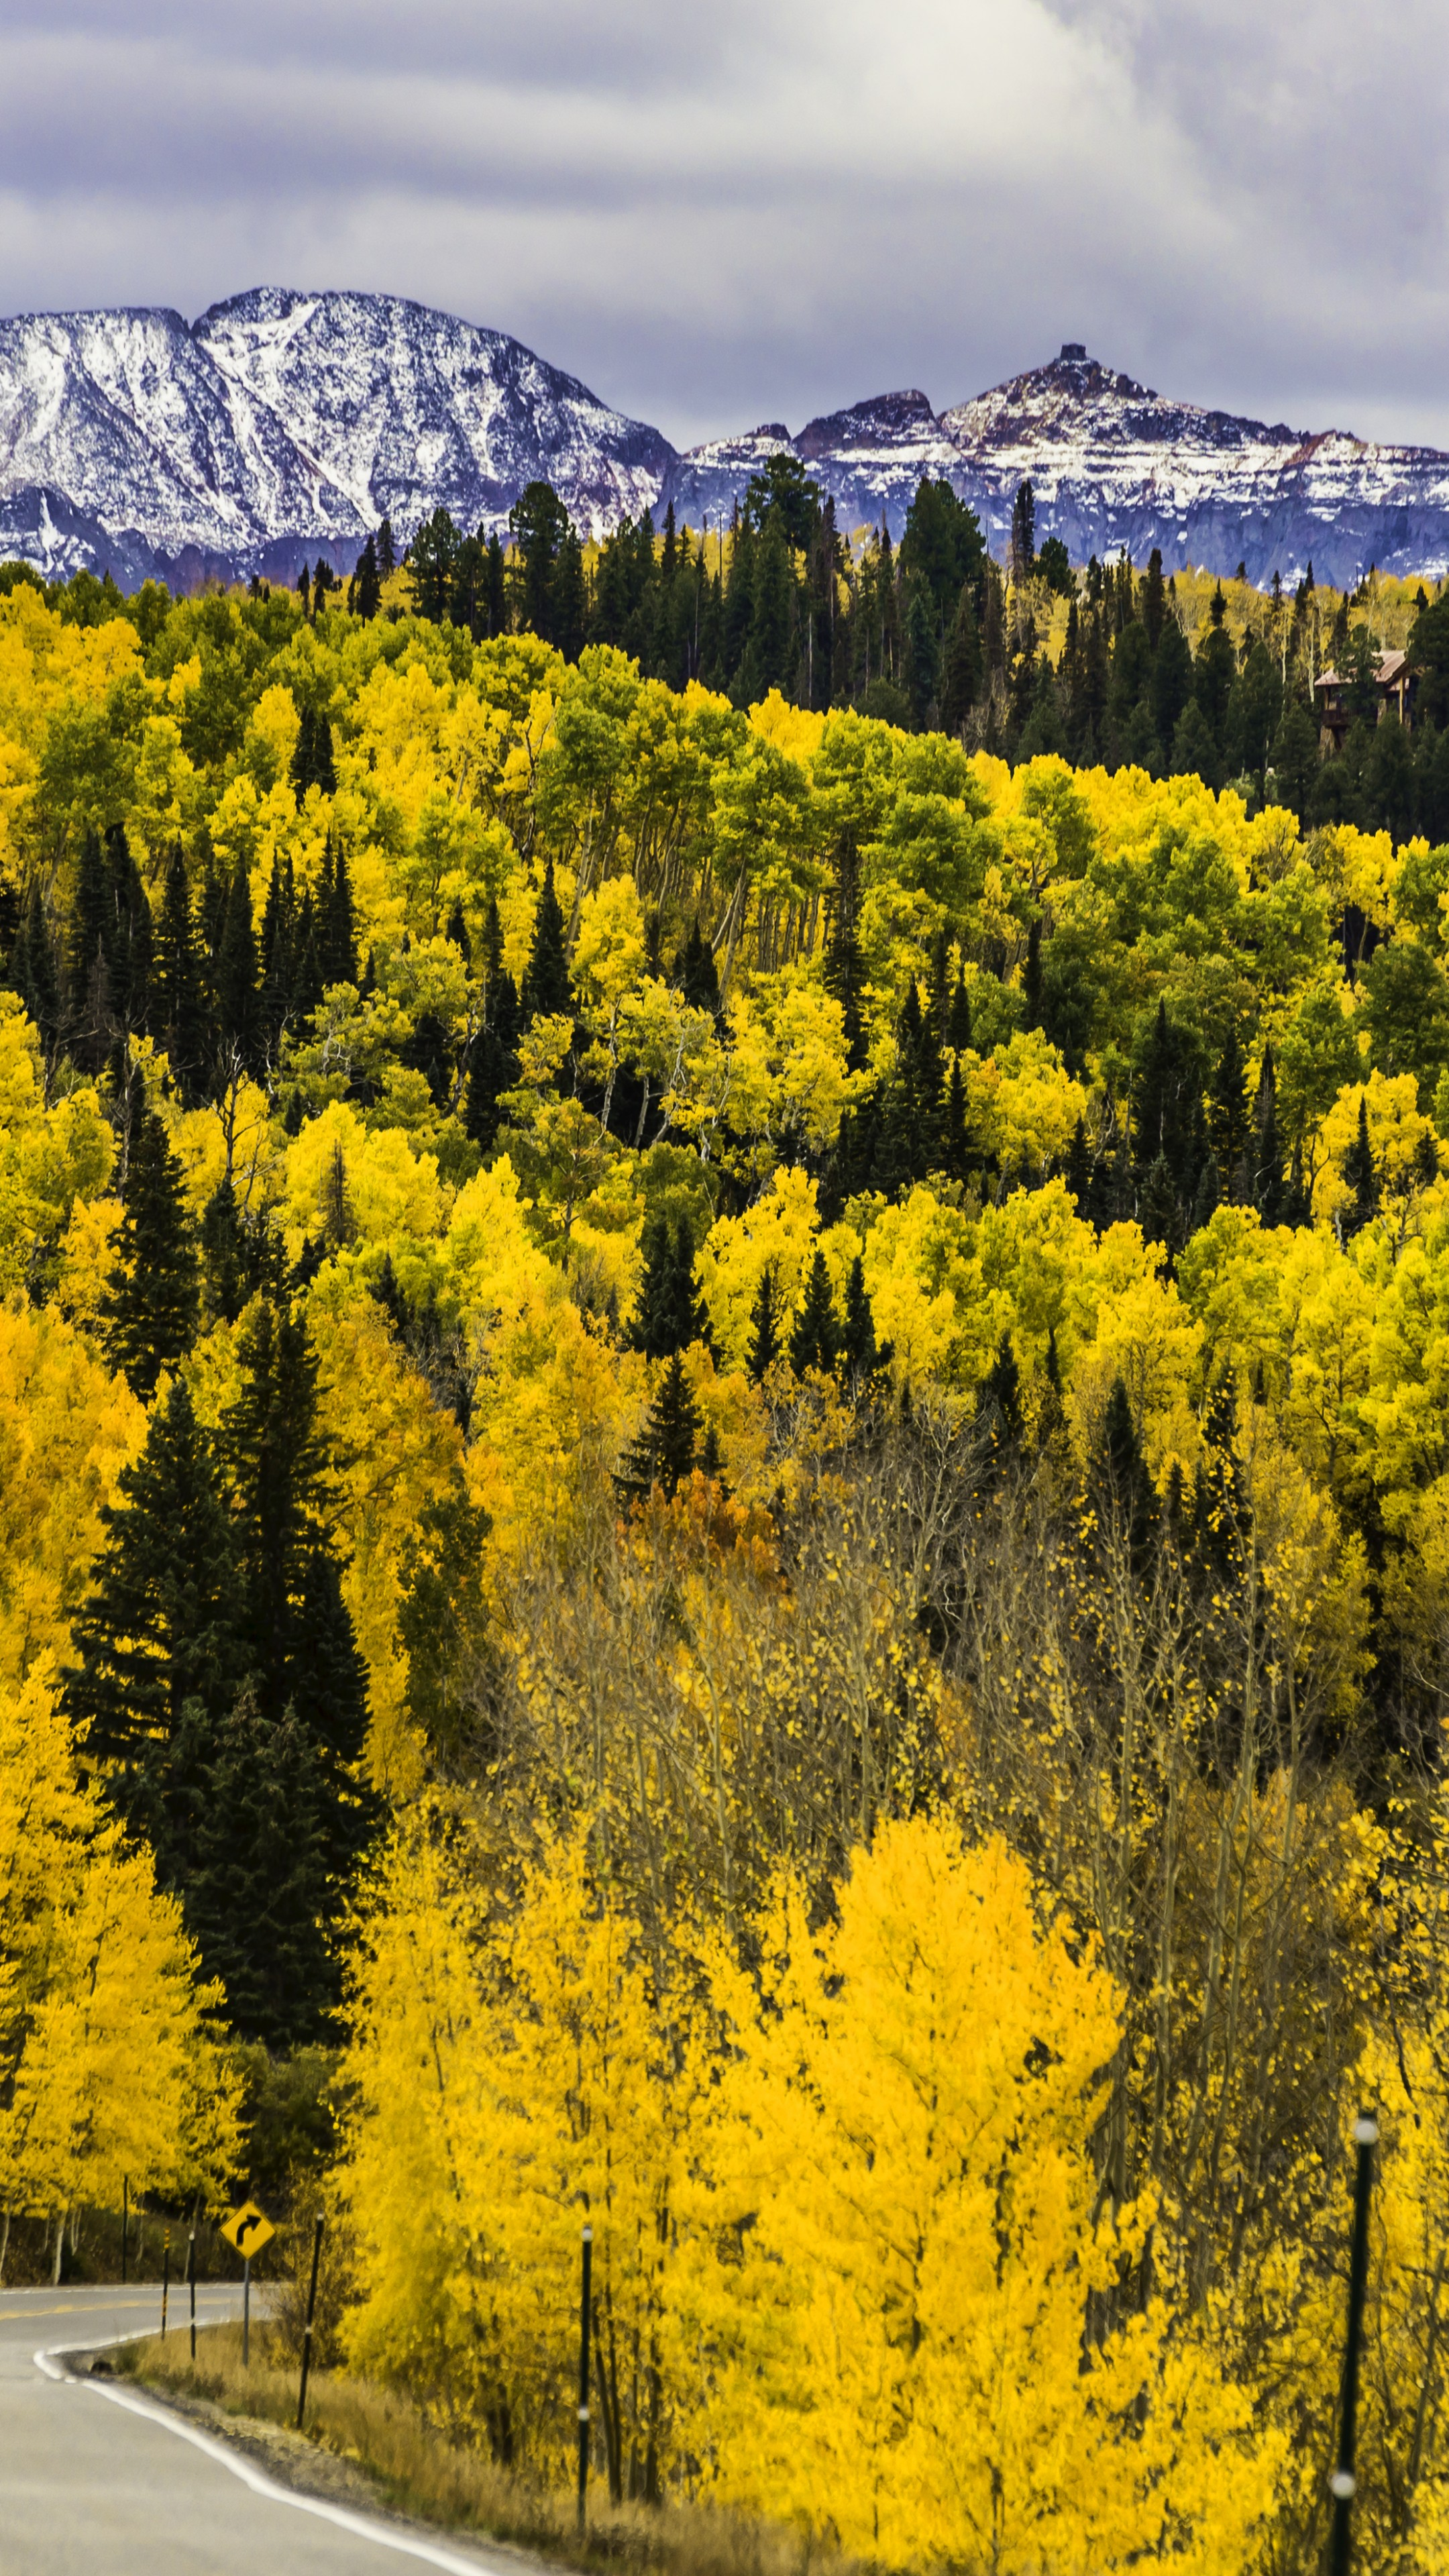 Wallpaper Autumn Forest Trees Mountains Road Colorado